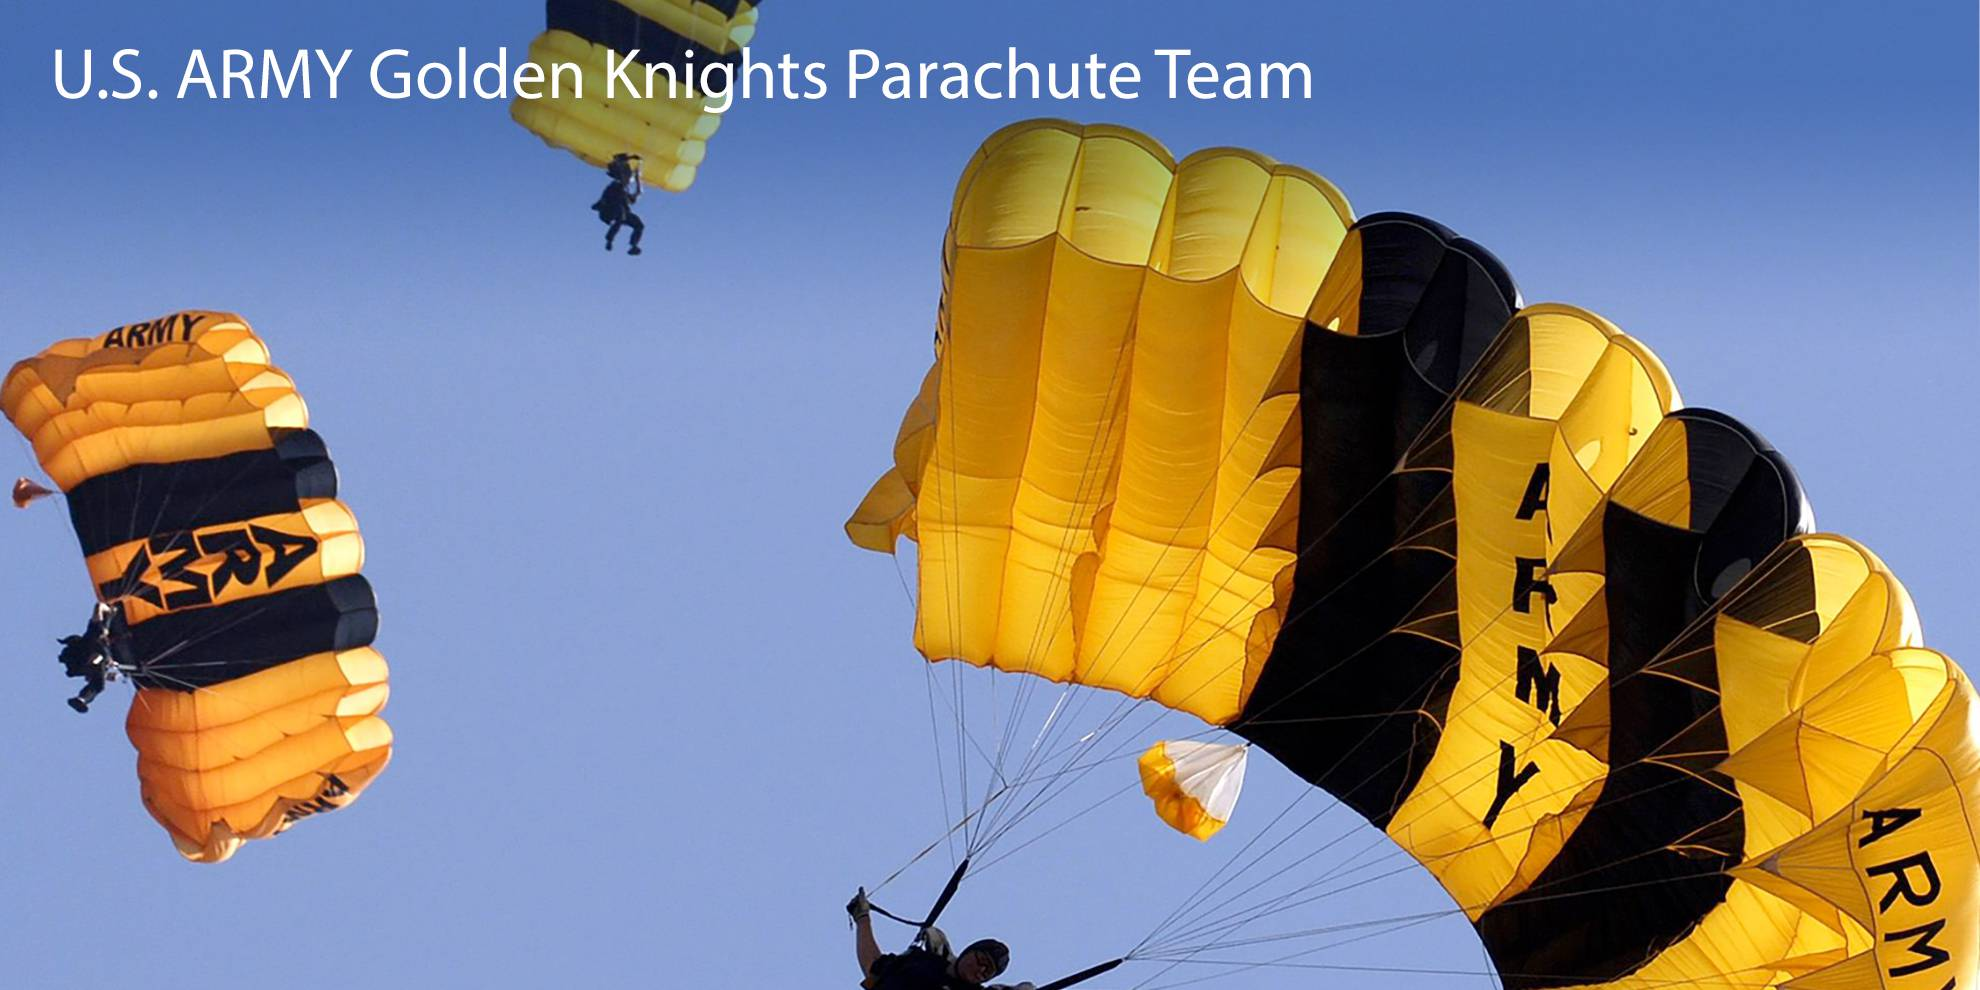 U.S. ARMY Golden Knights Parachute Team